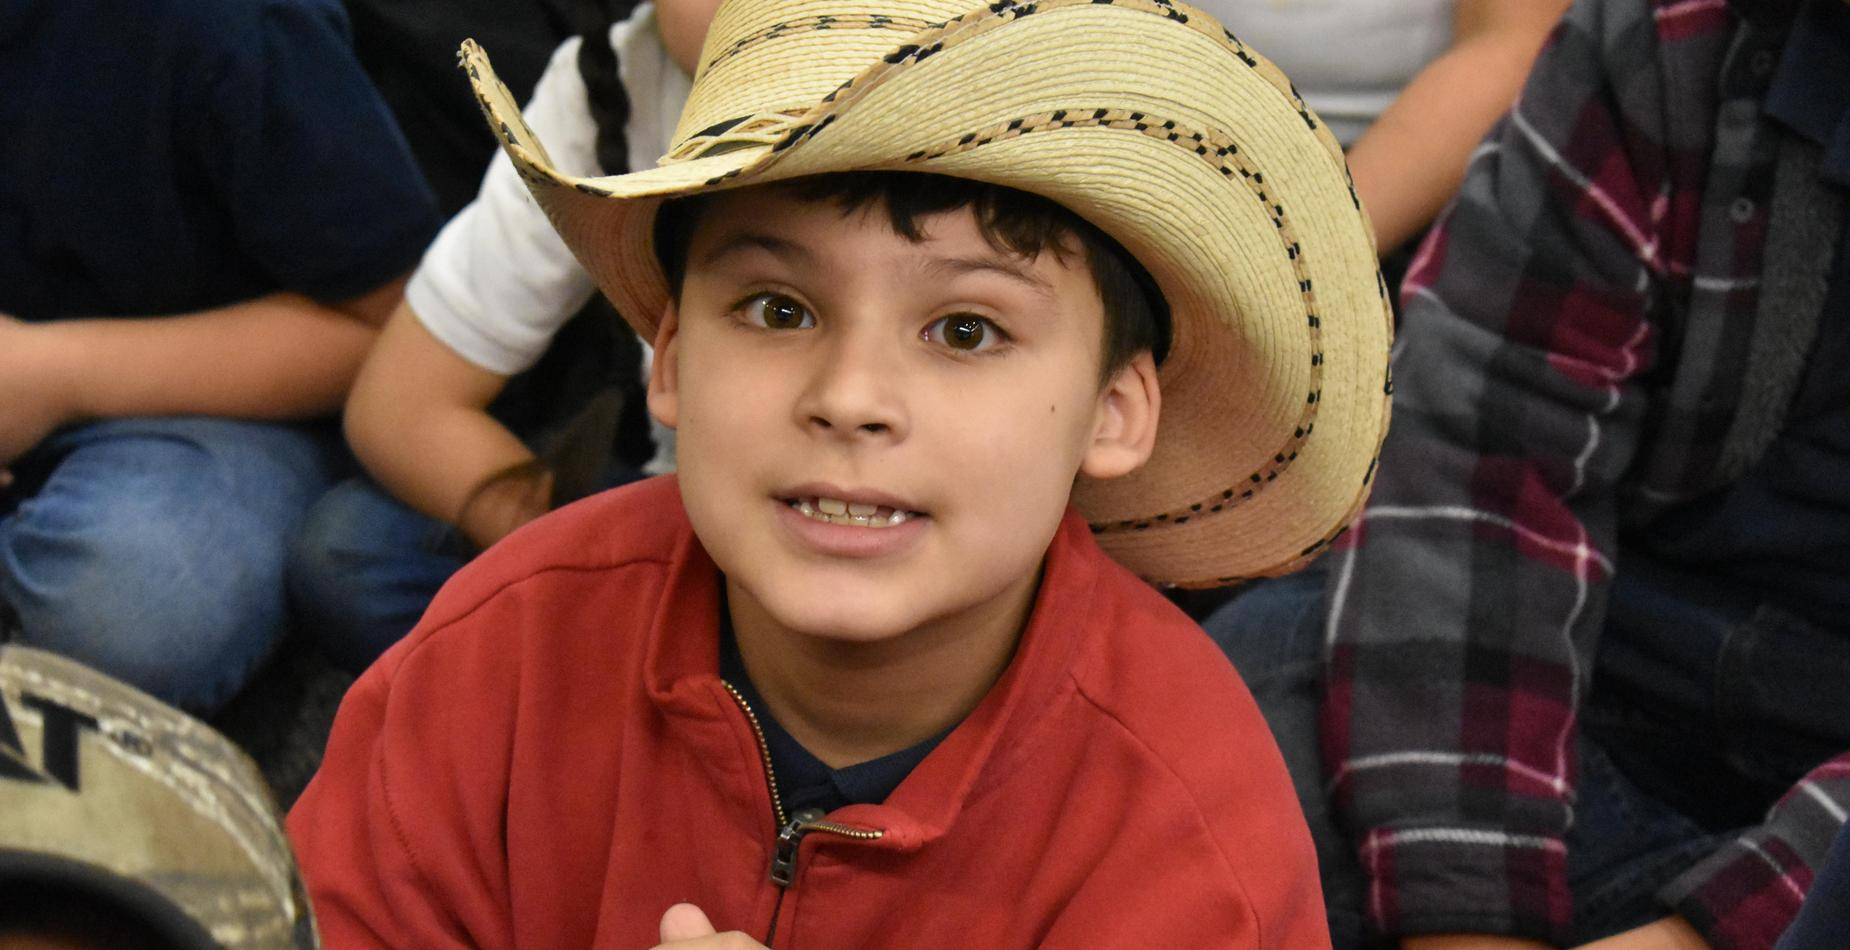 A little boy wearing a cowboy hat for hat day.